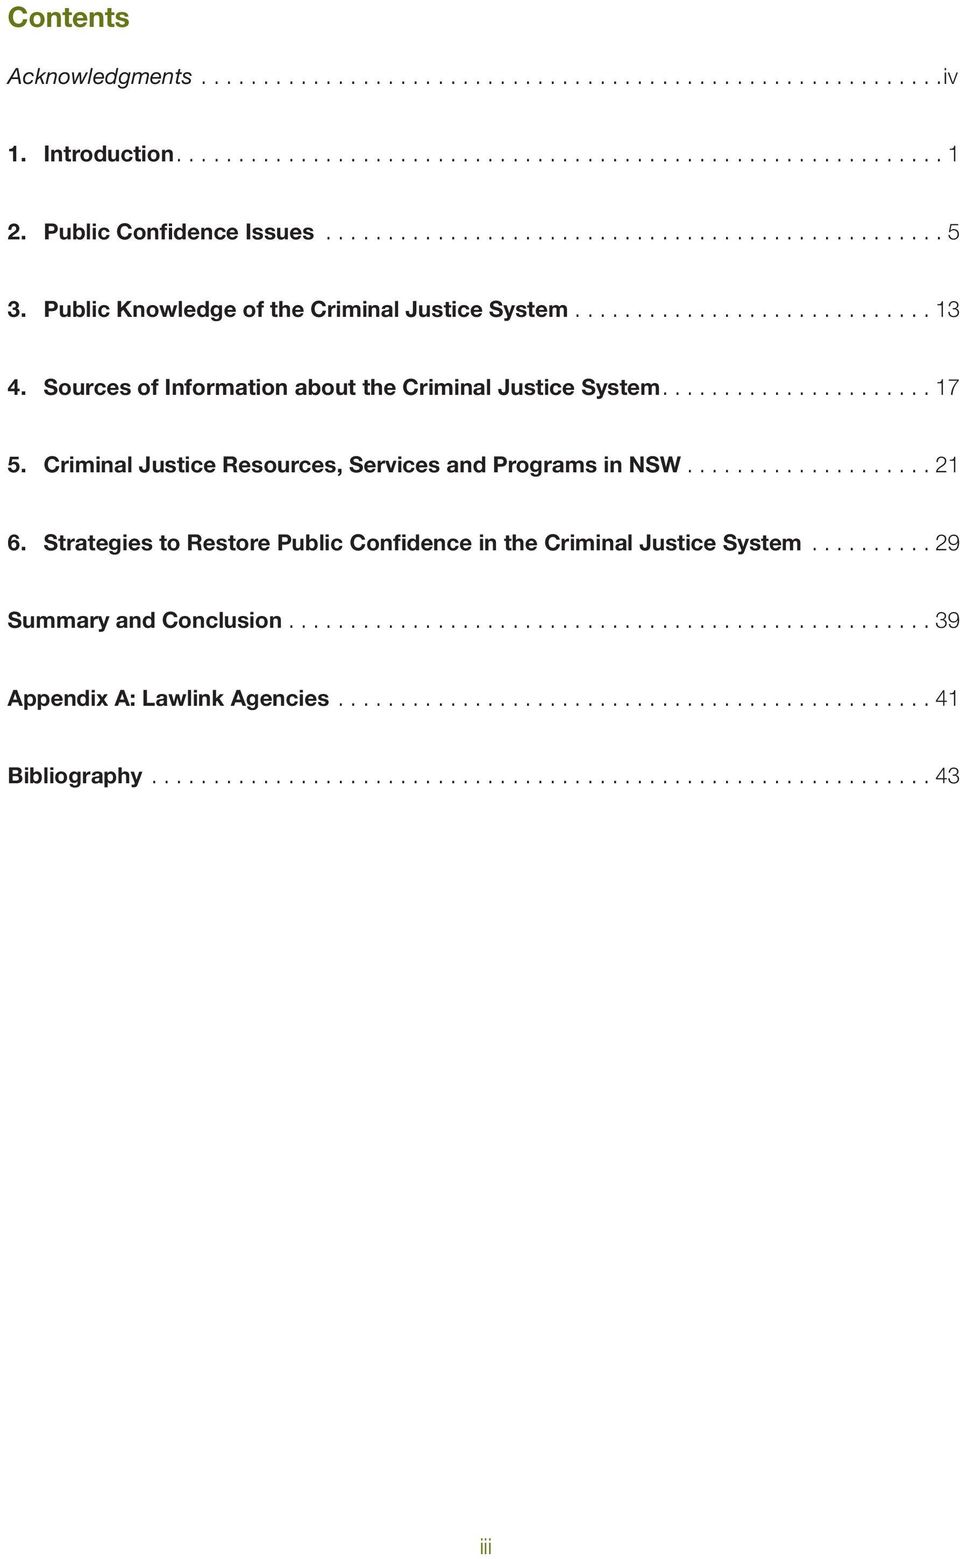 Criminal Justice Resources, Services and Programs in NSW................... 21 6. Strategies to Restore Public Confidence in the Criminal Justice System......... 29 Summary and Conclusion.